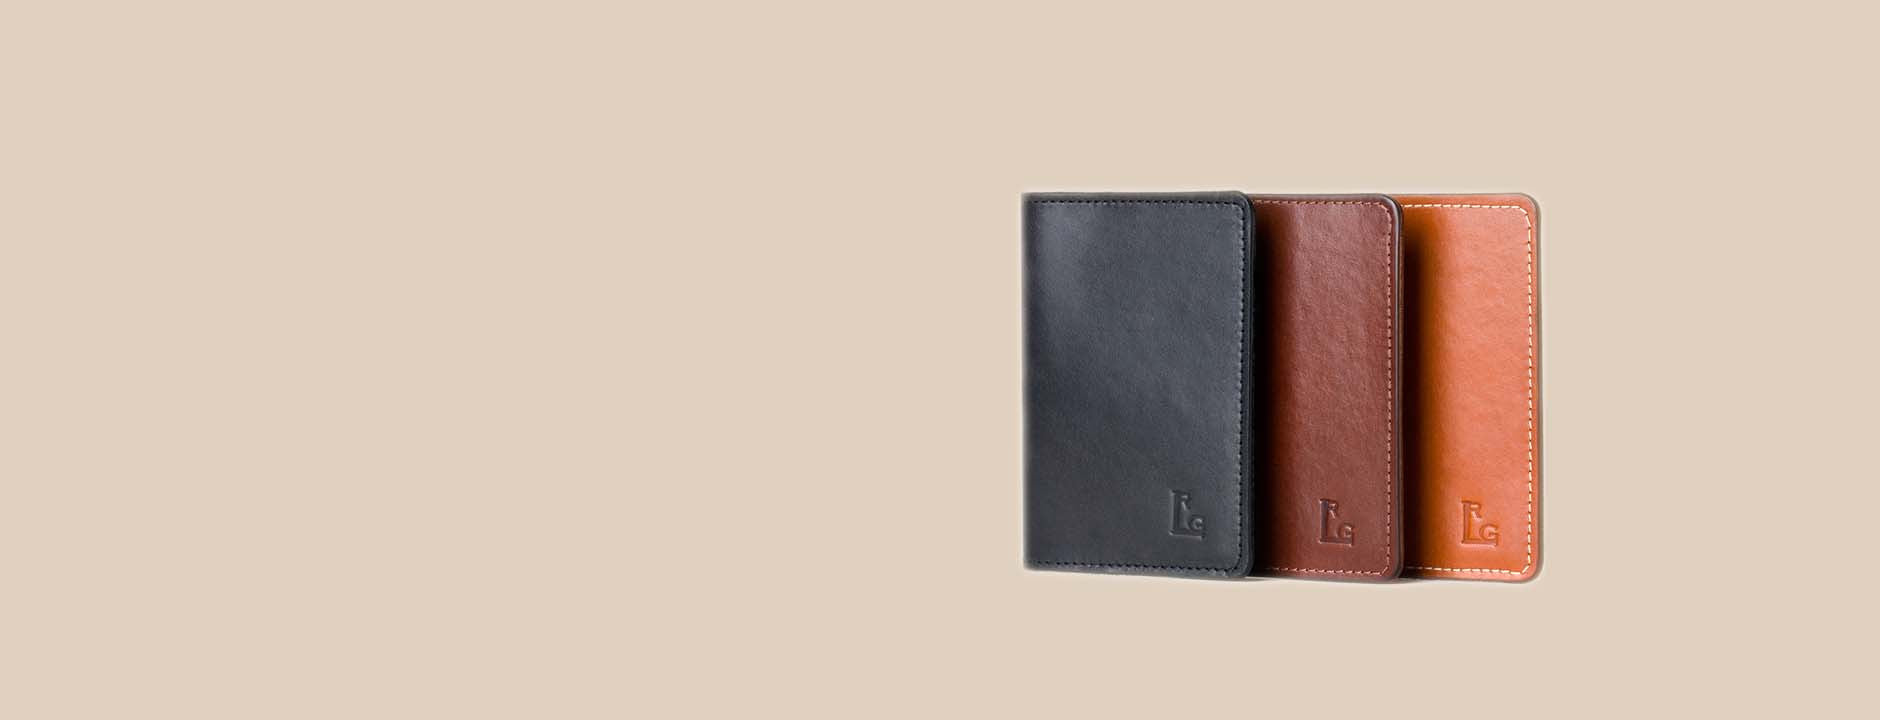 Shop and Buy Men's Wallets at www.vpwallet.com